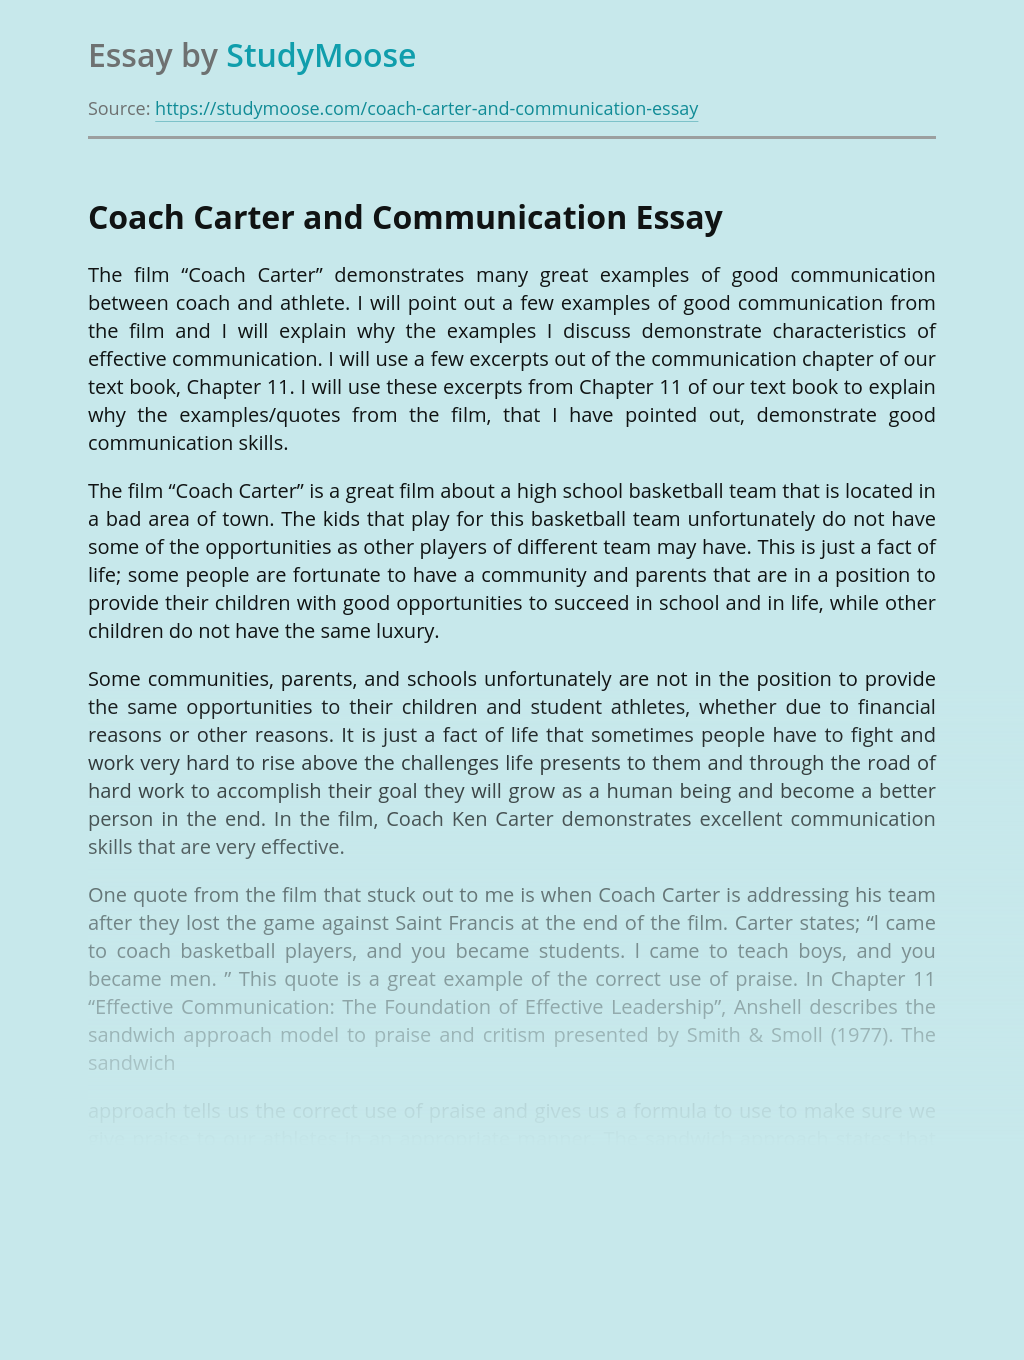 Coach Carter and Communication